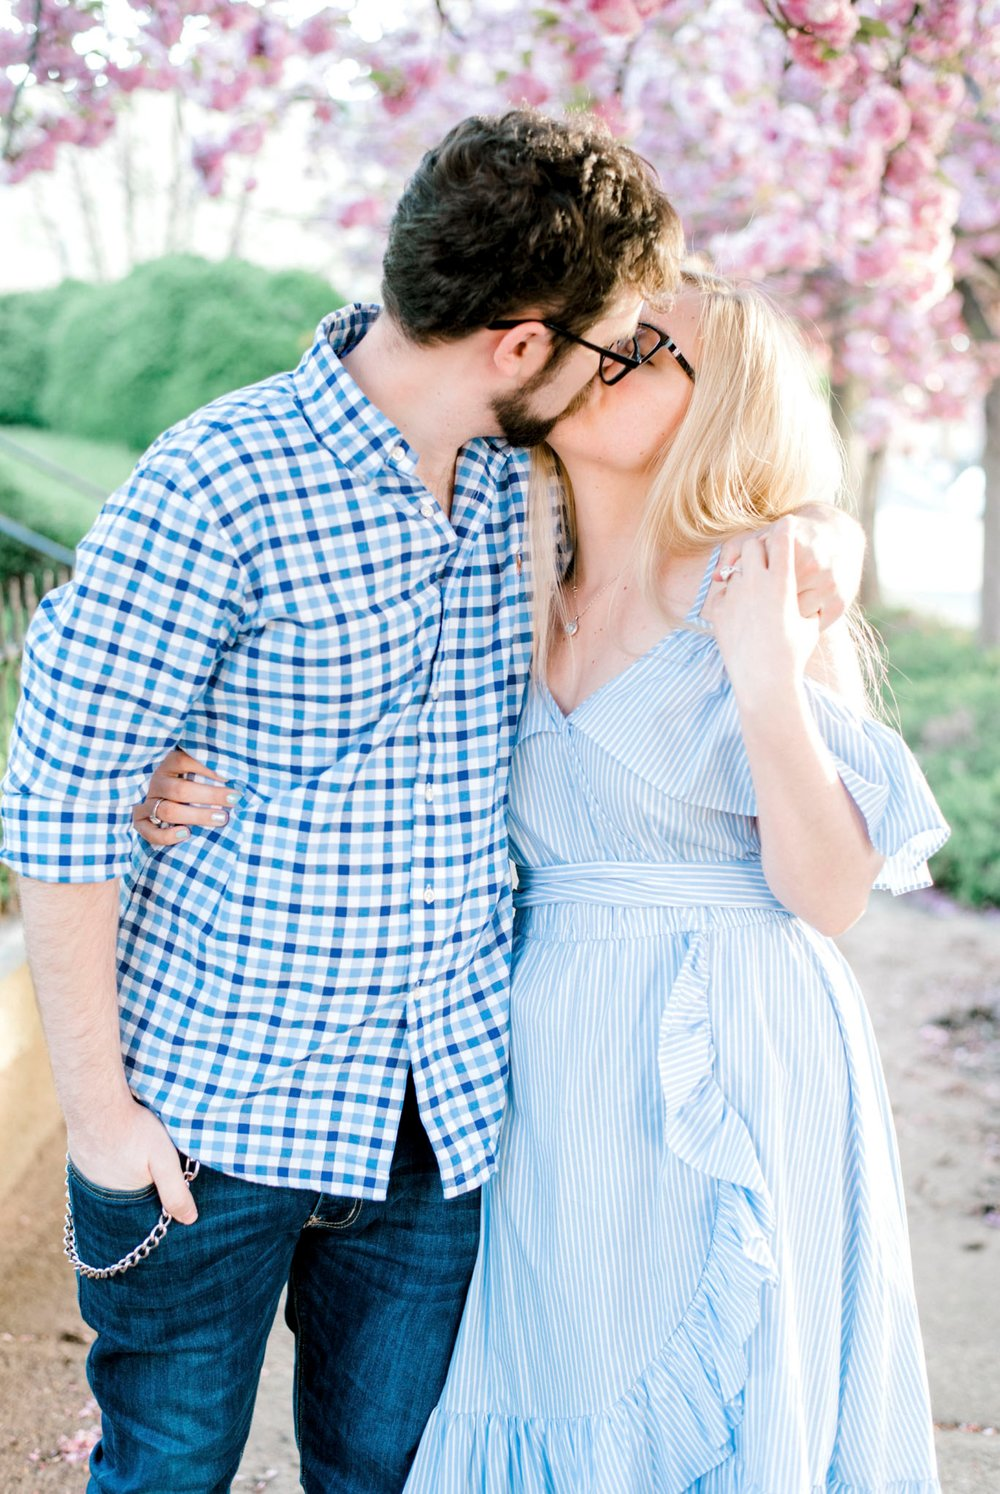 LaunceTarah_VirginiaWeddingPhotographer_EngagementSession_LynchburgVA_DowntownLynchburg_SpringEngagement 11.jpg